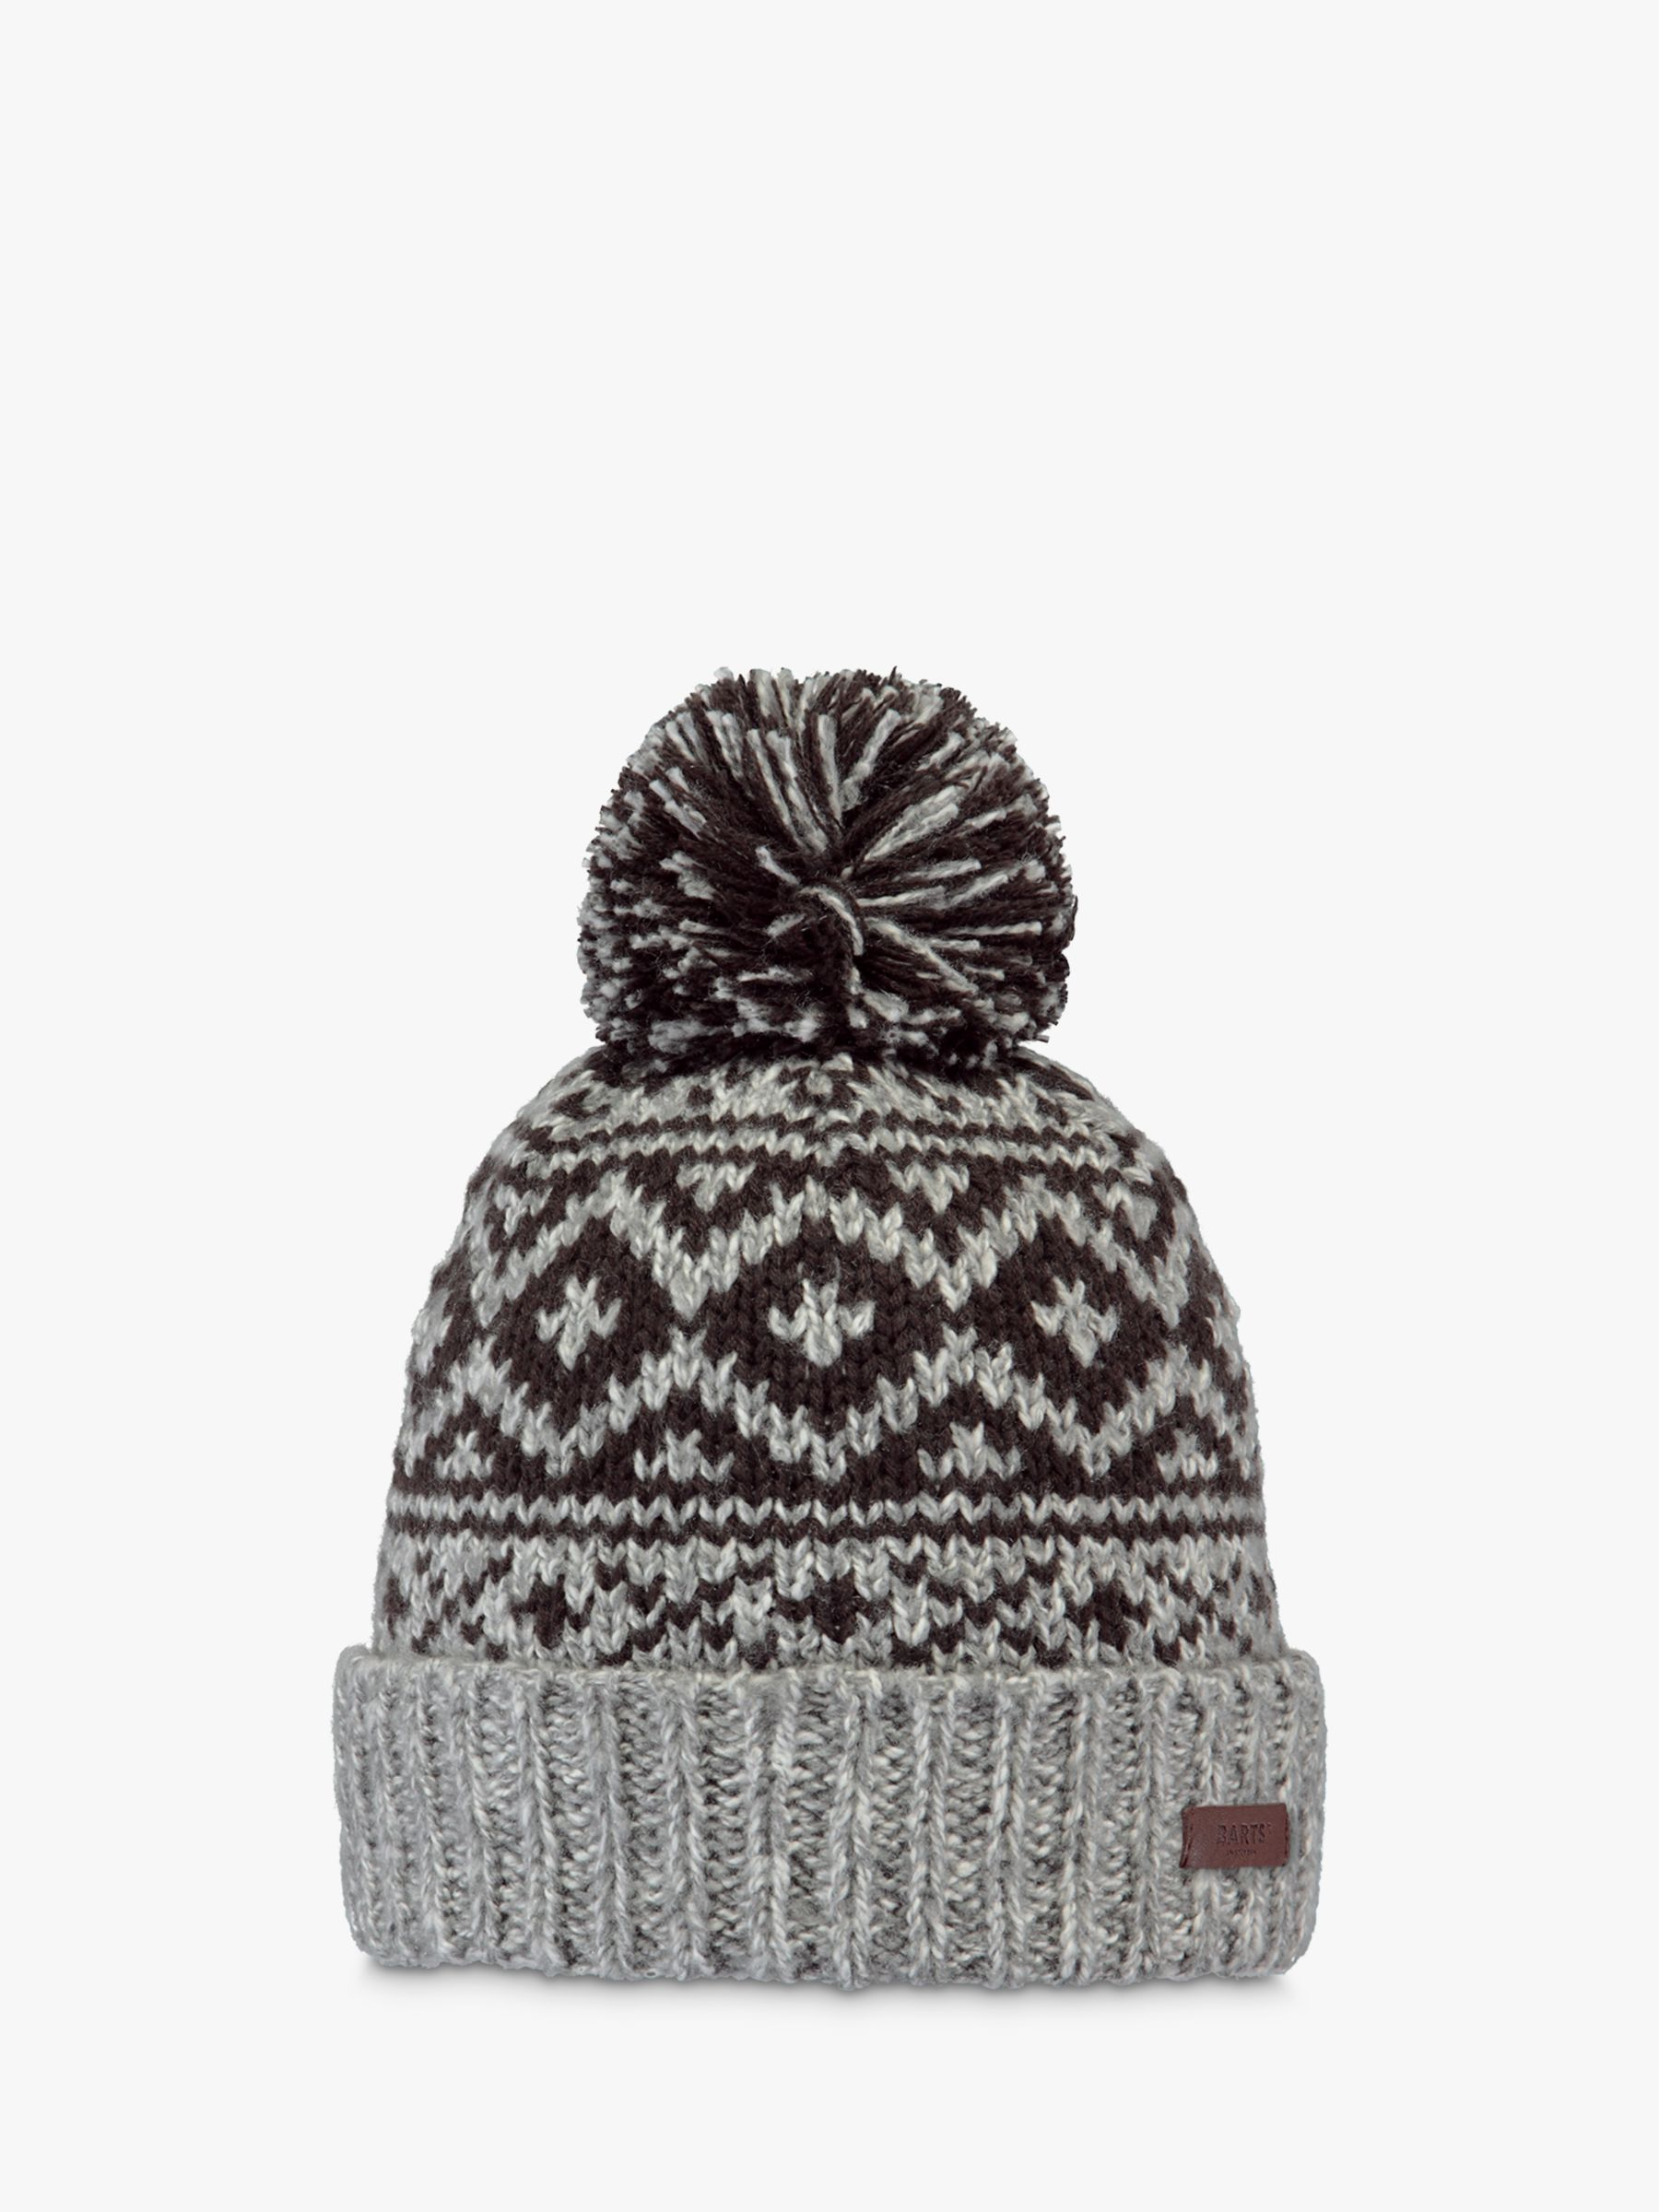 Barts Barts Cartonn Beanie, One Size, Heather Grey